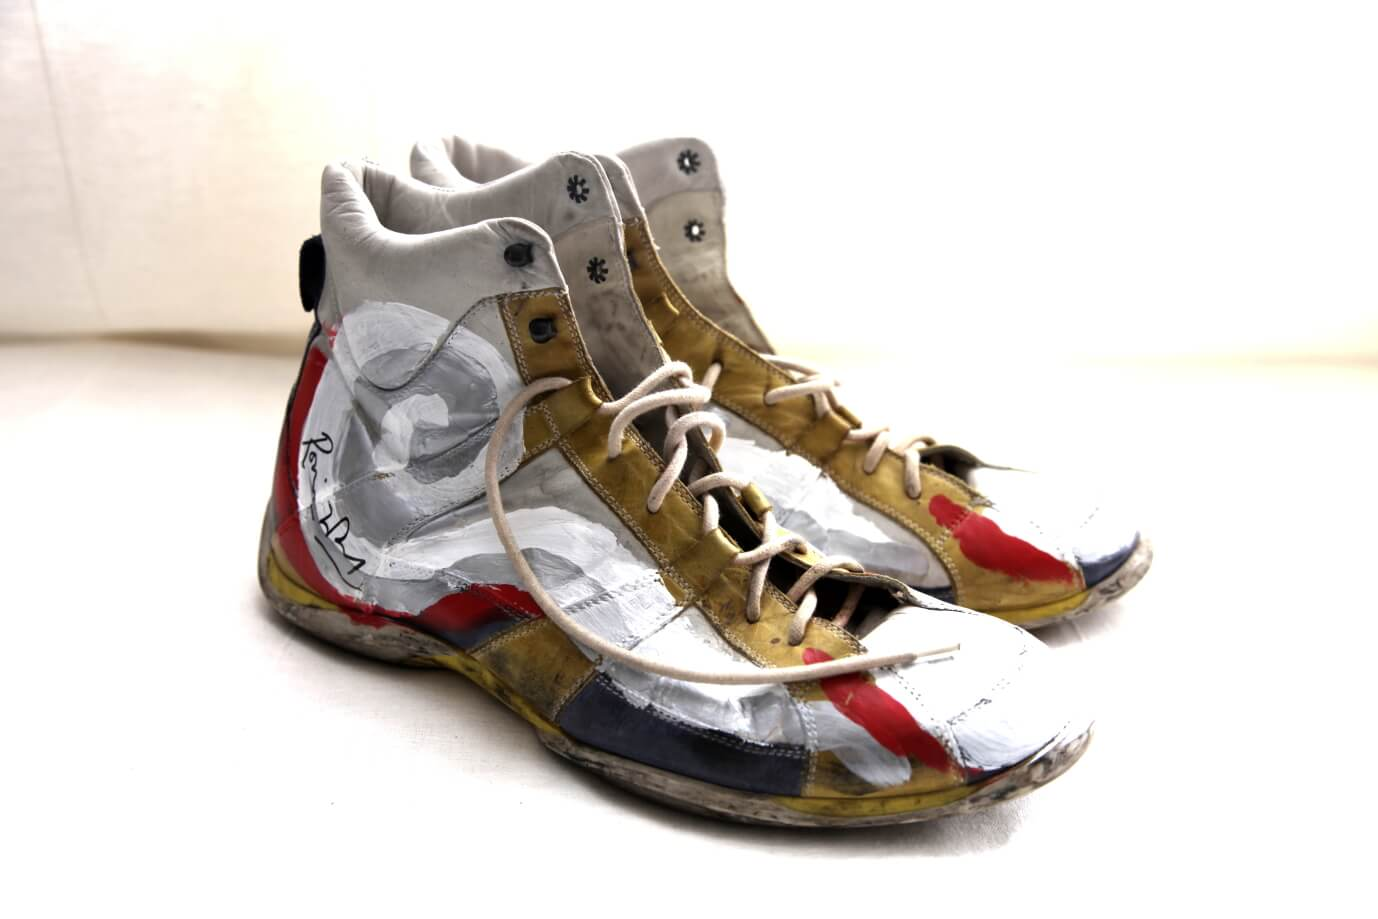 The shoes Ronnie painted and donated in 2012